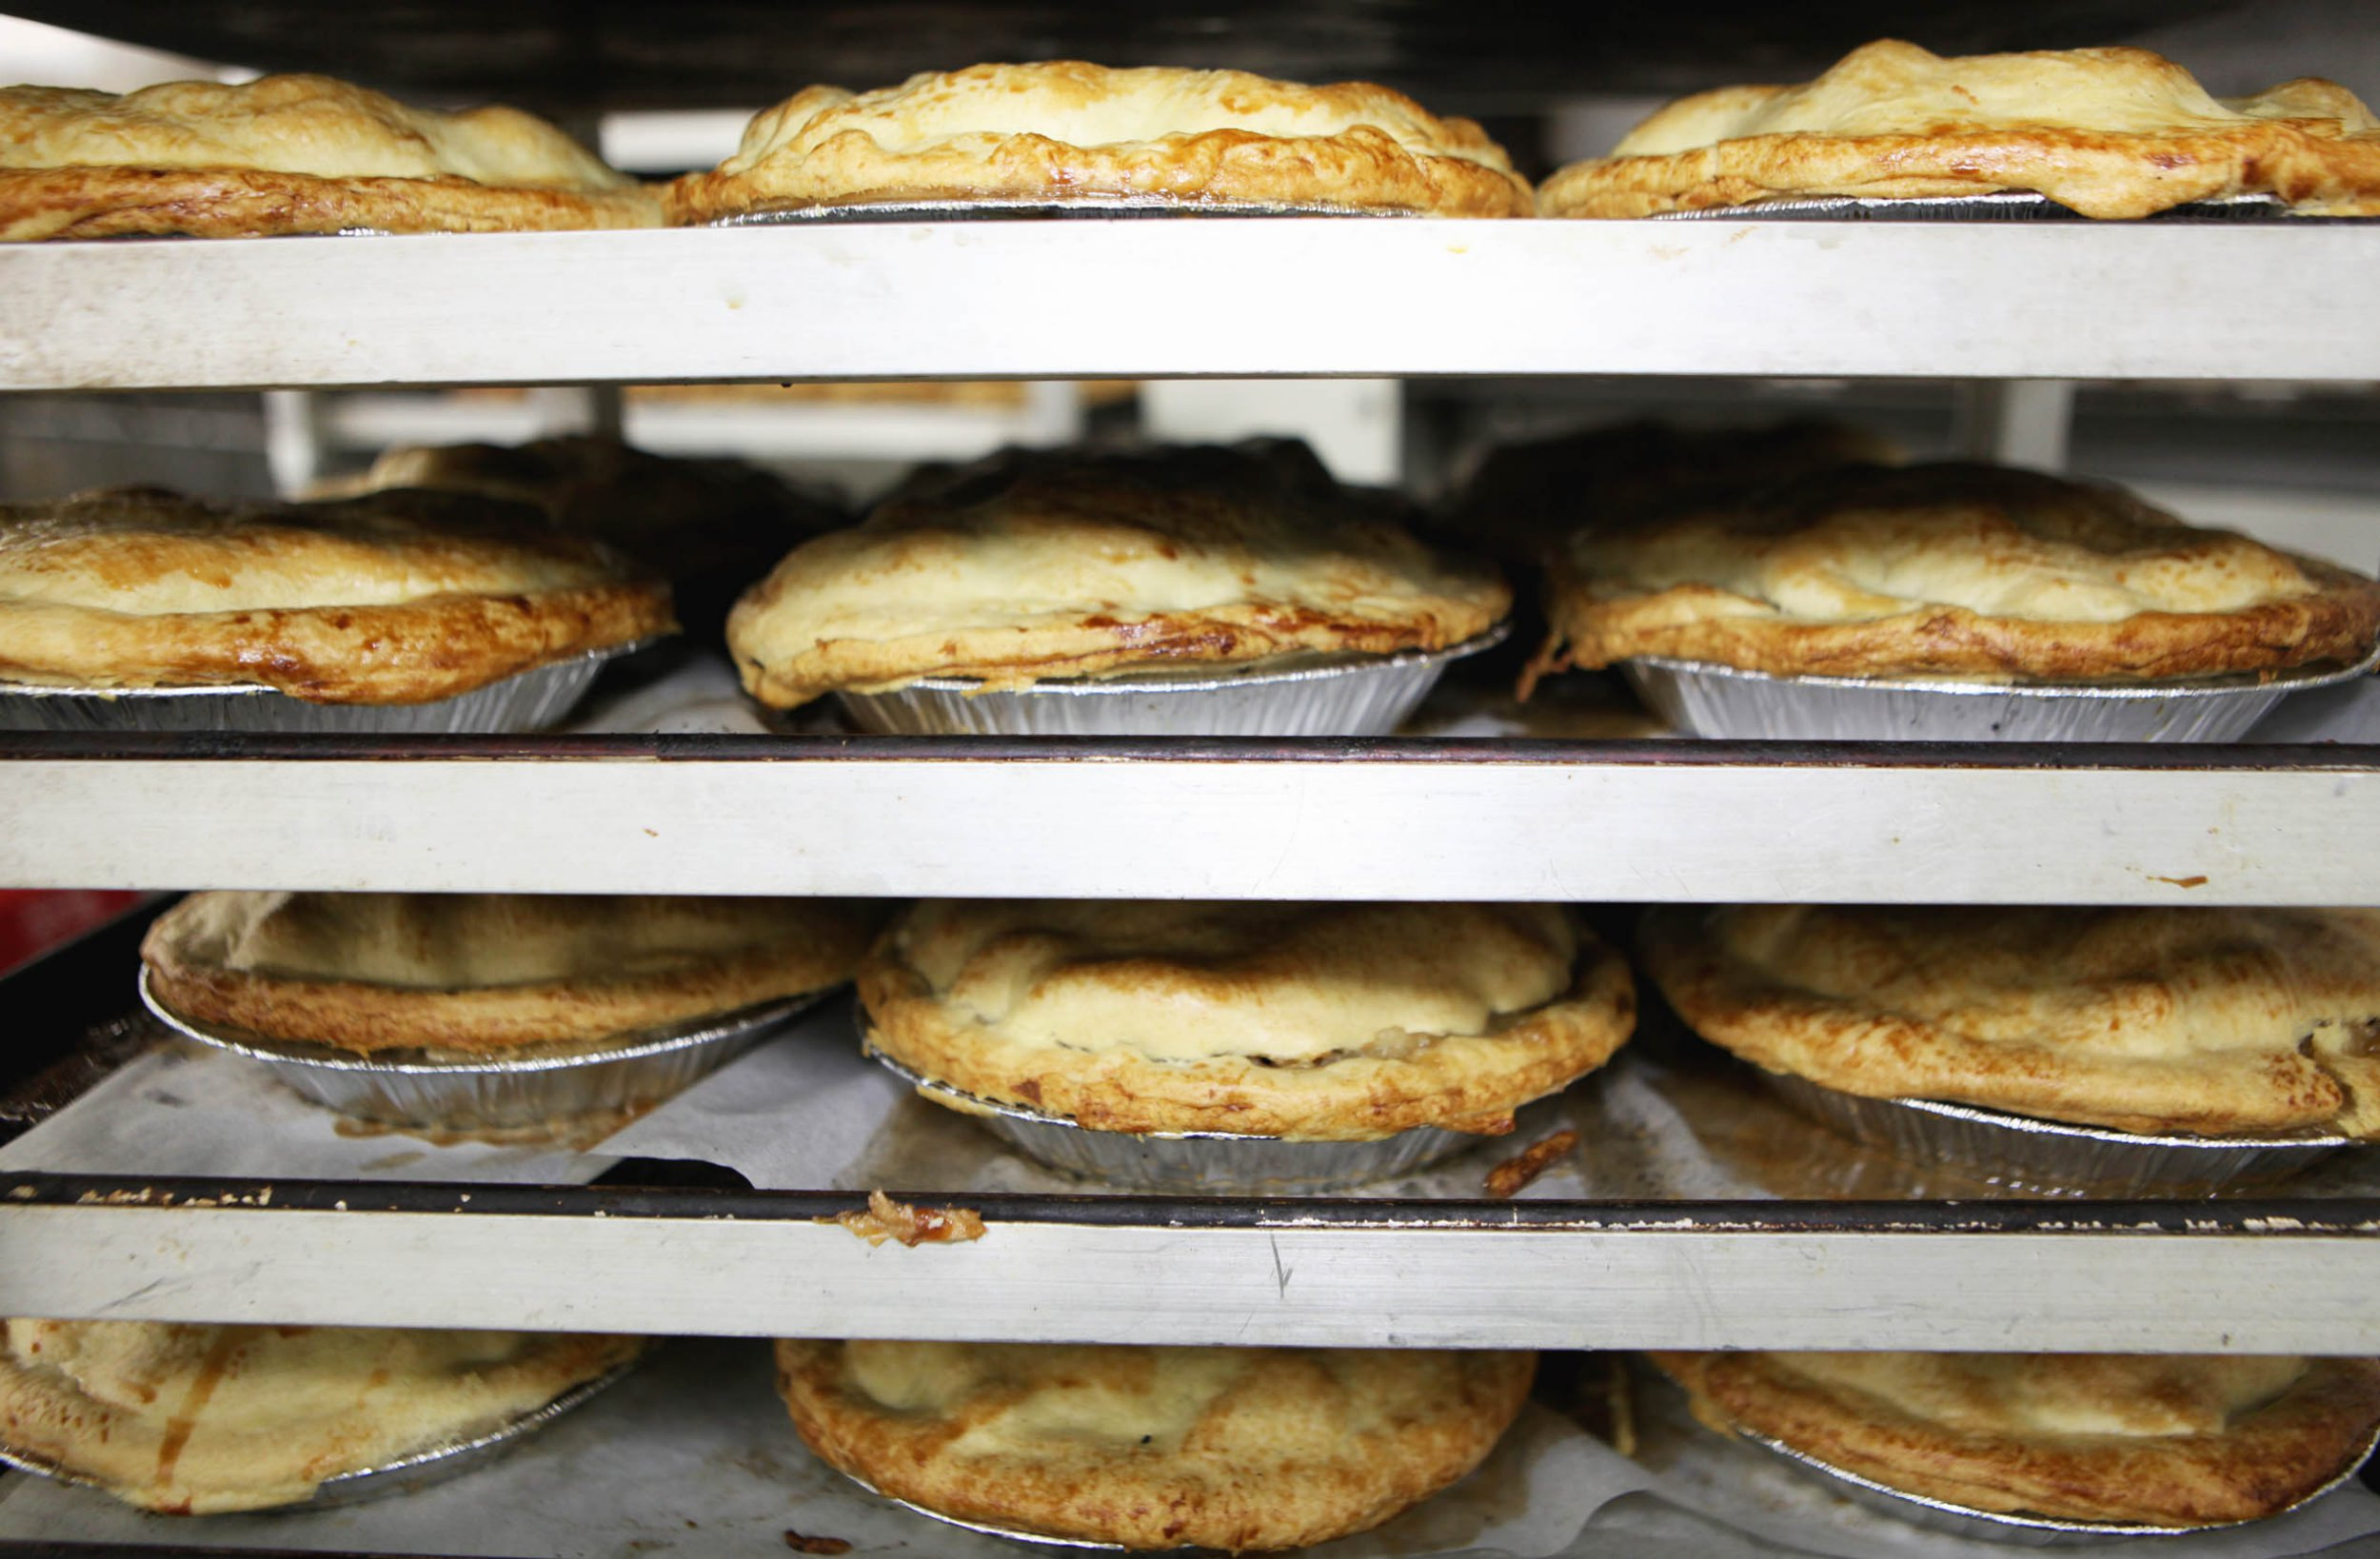 Don't eat these pies if you bought them from Tesco, Aldi and Nisa